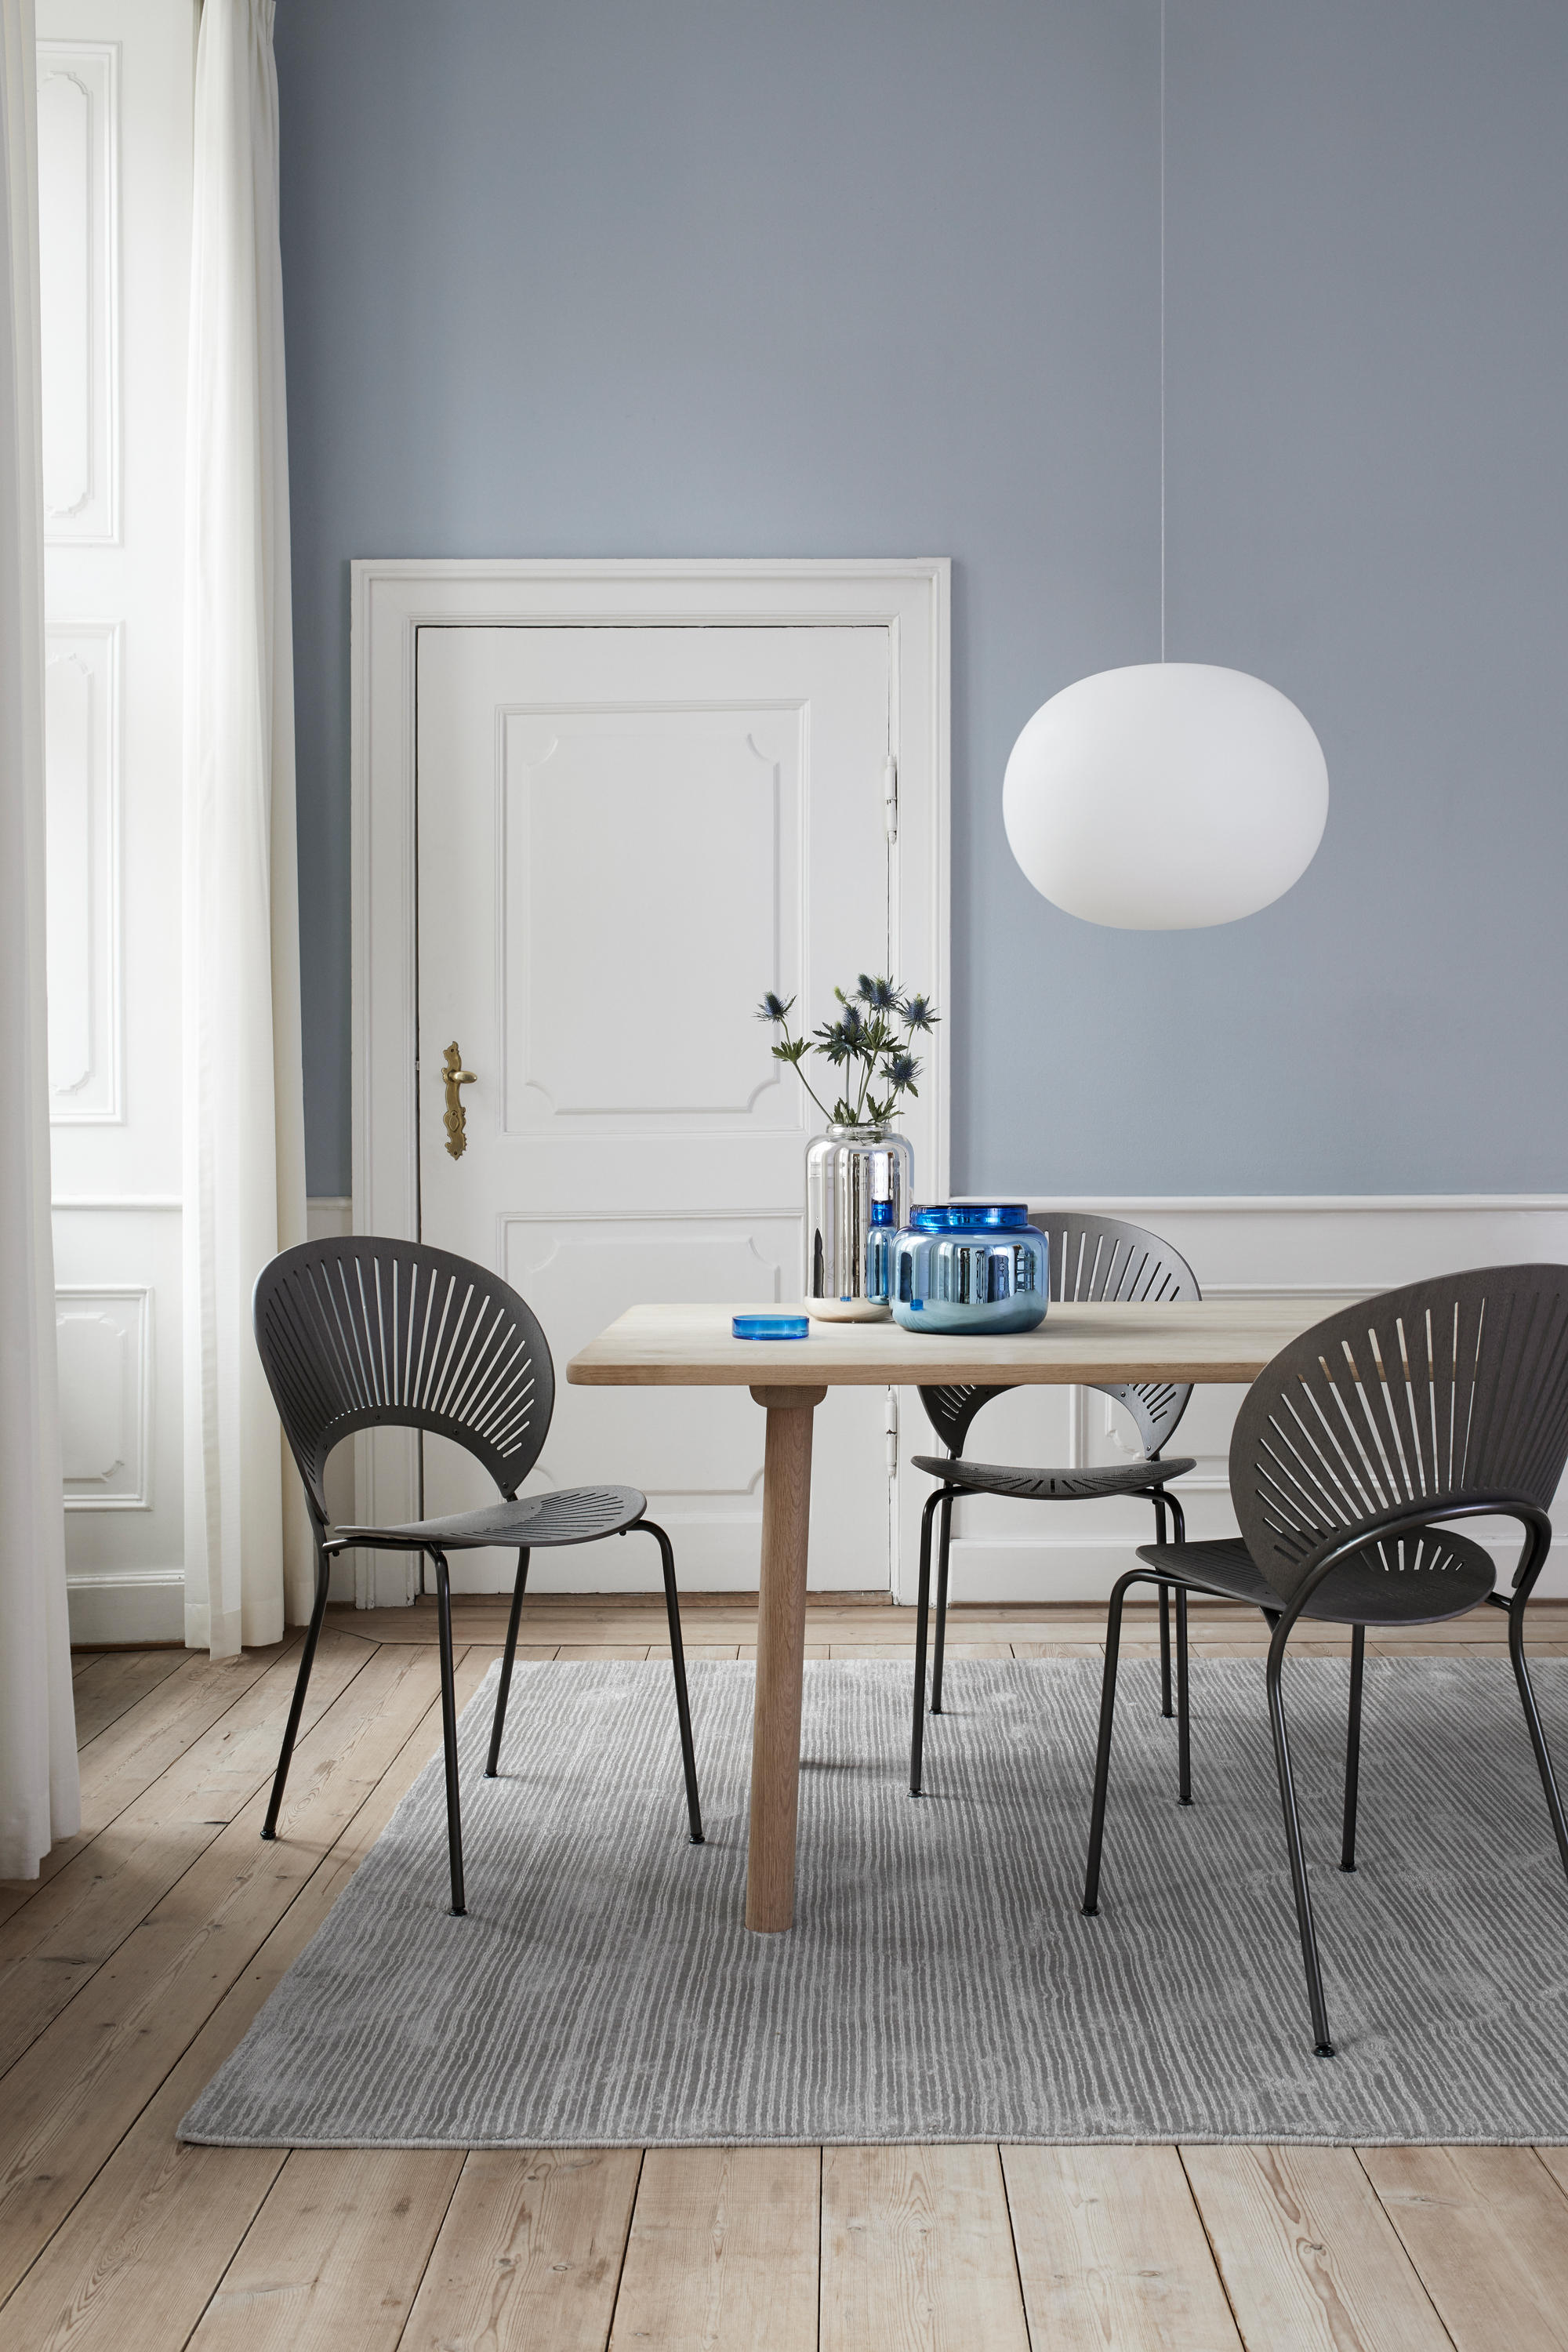 TRINIDAD CHAIR - SEAT UPHOLSTERED - Chairs from Fredericia ...